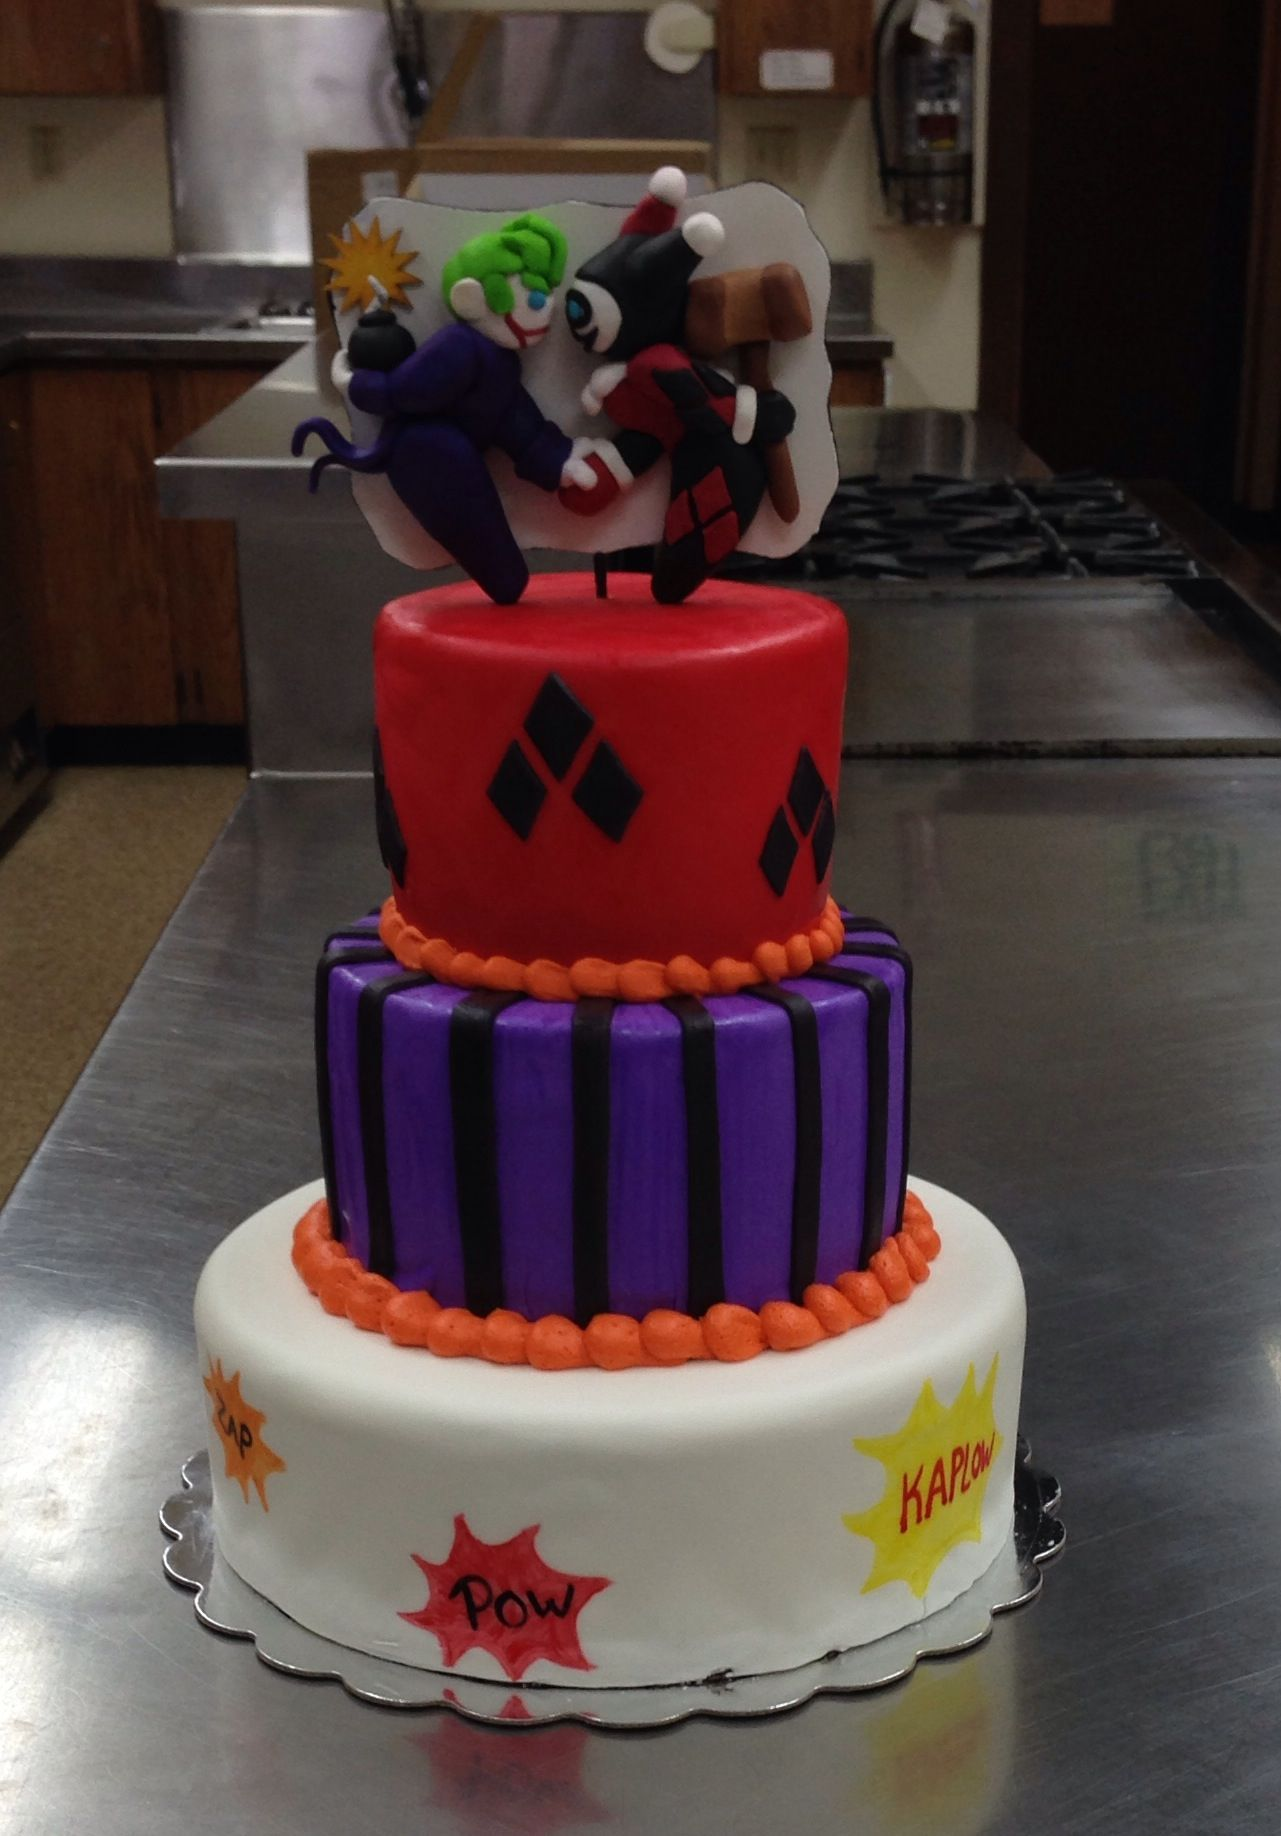 harley quinn wedding ring Harley Quinn Joker themed wedding cake by Custom Cakes by Emilie in Anchorage AK https